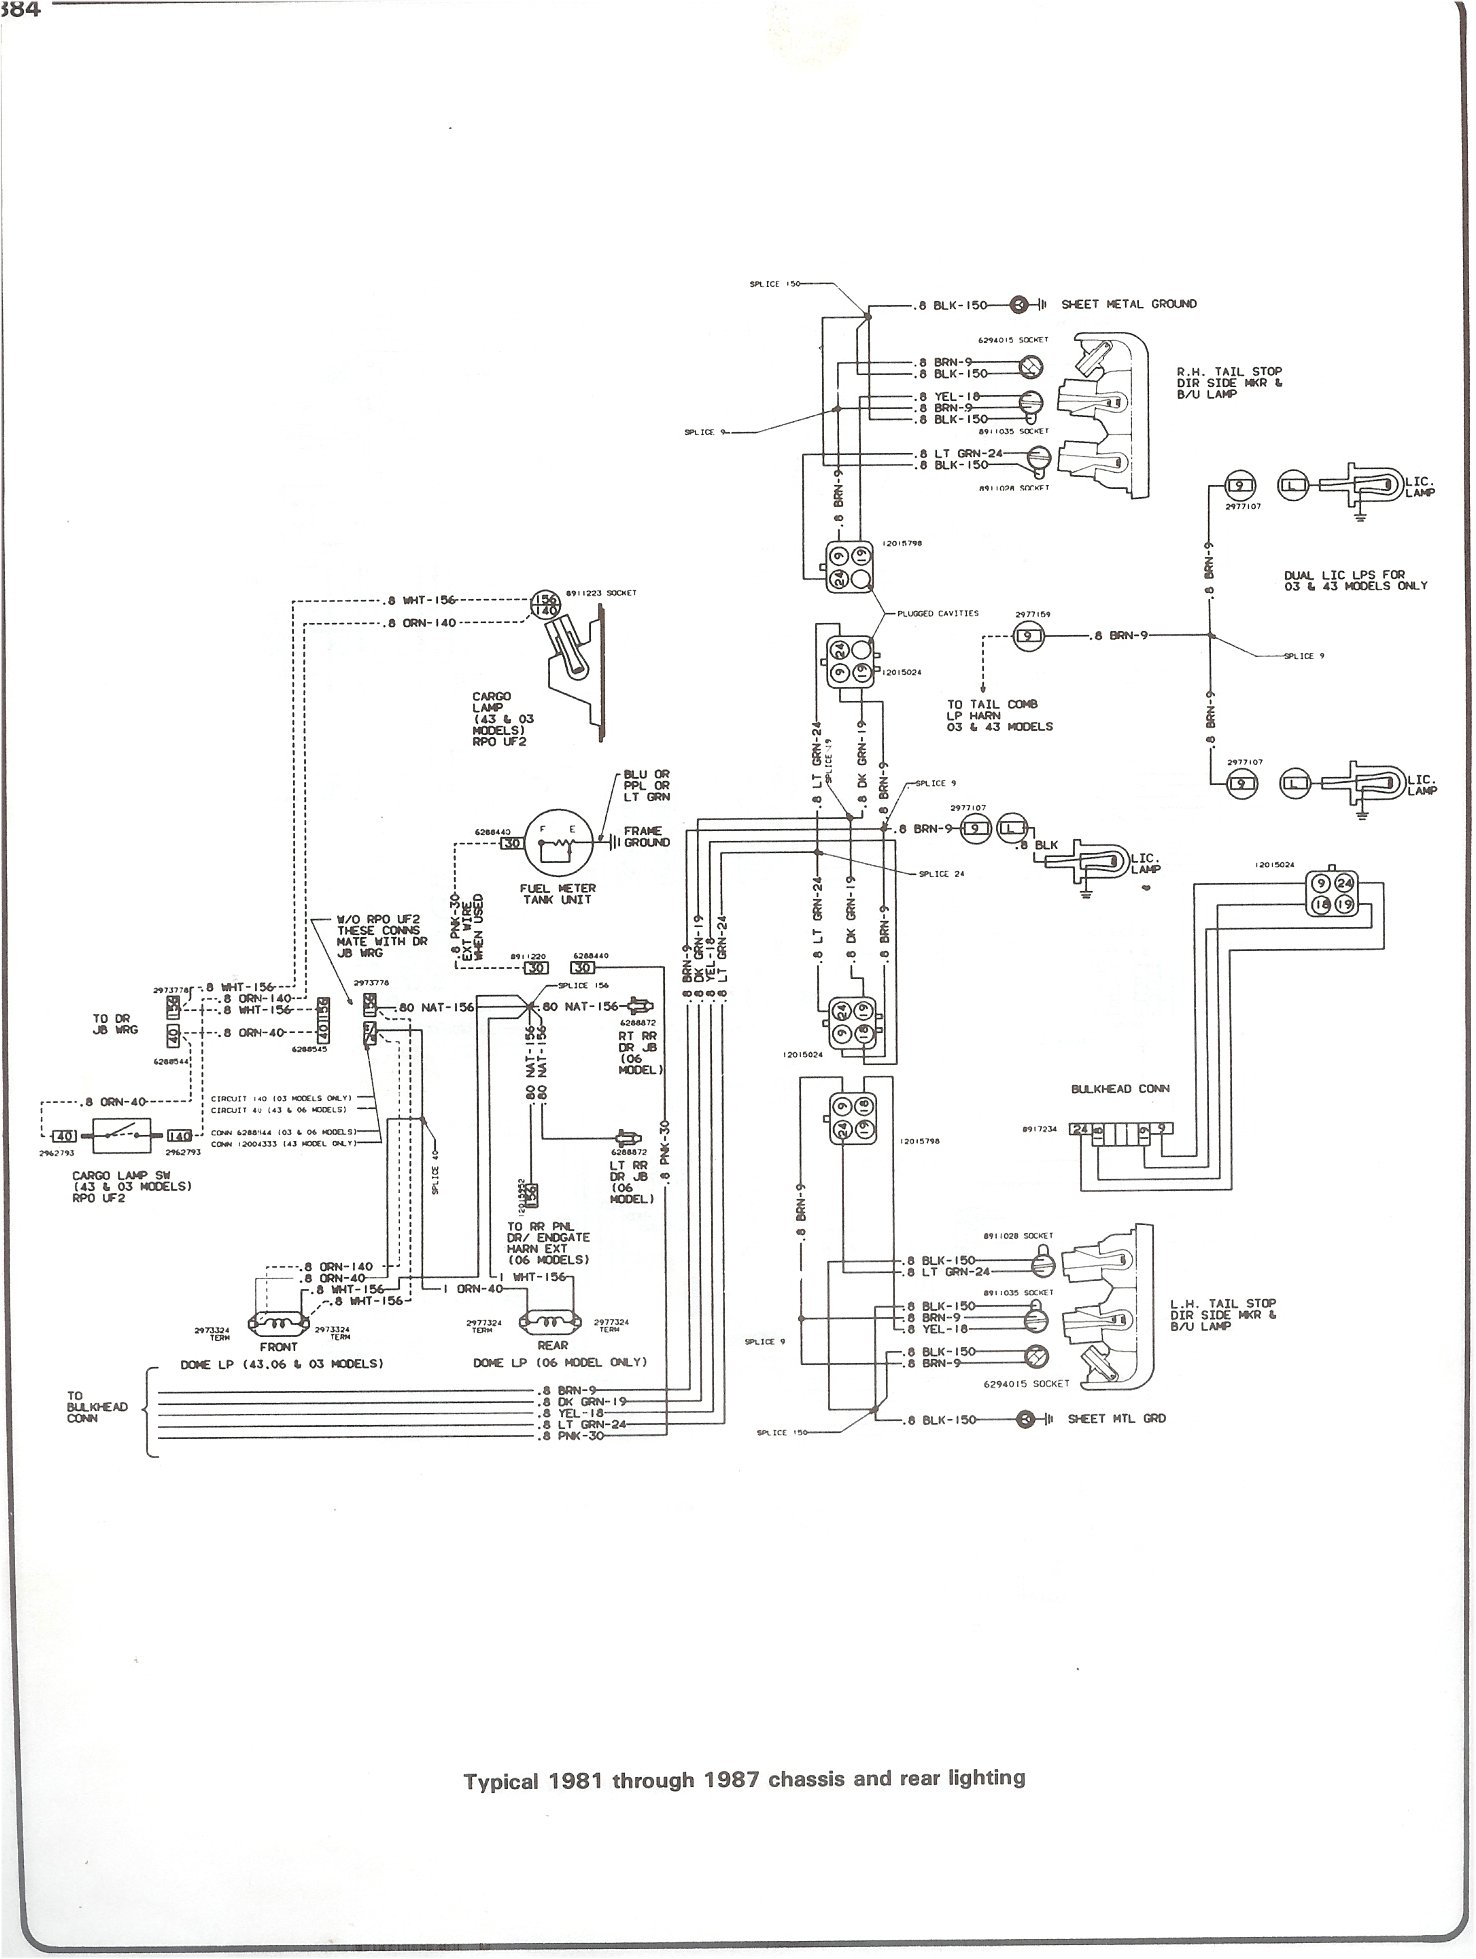 81 87_chass_rr_light complete 73 87 wiring diagrams In a 98 Dodge Dakota Wiring Harness at aneh.co